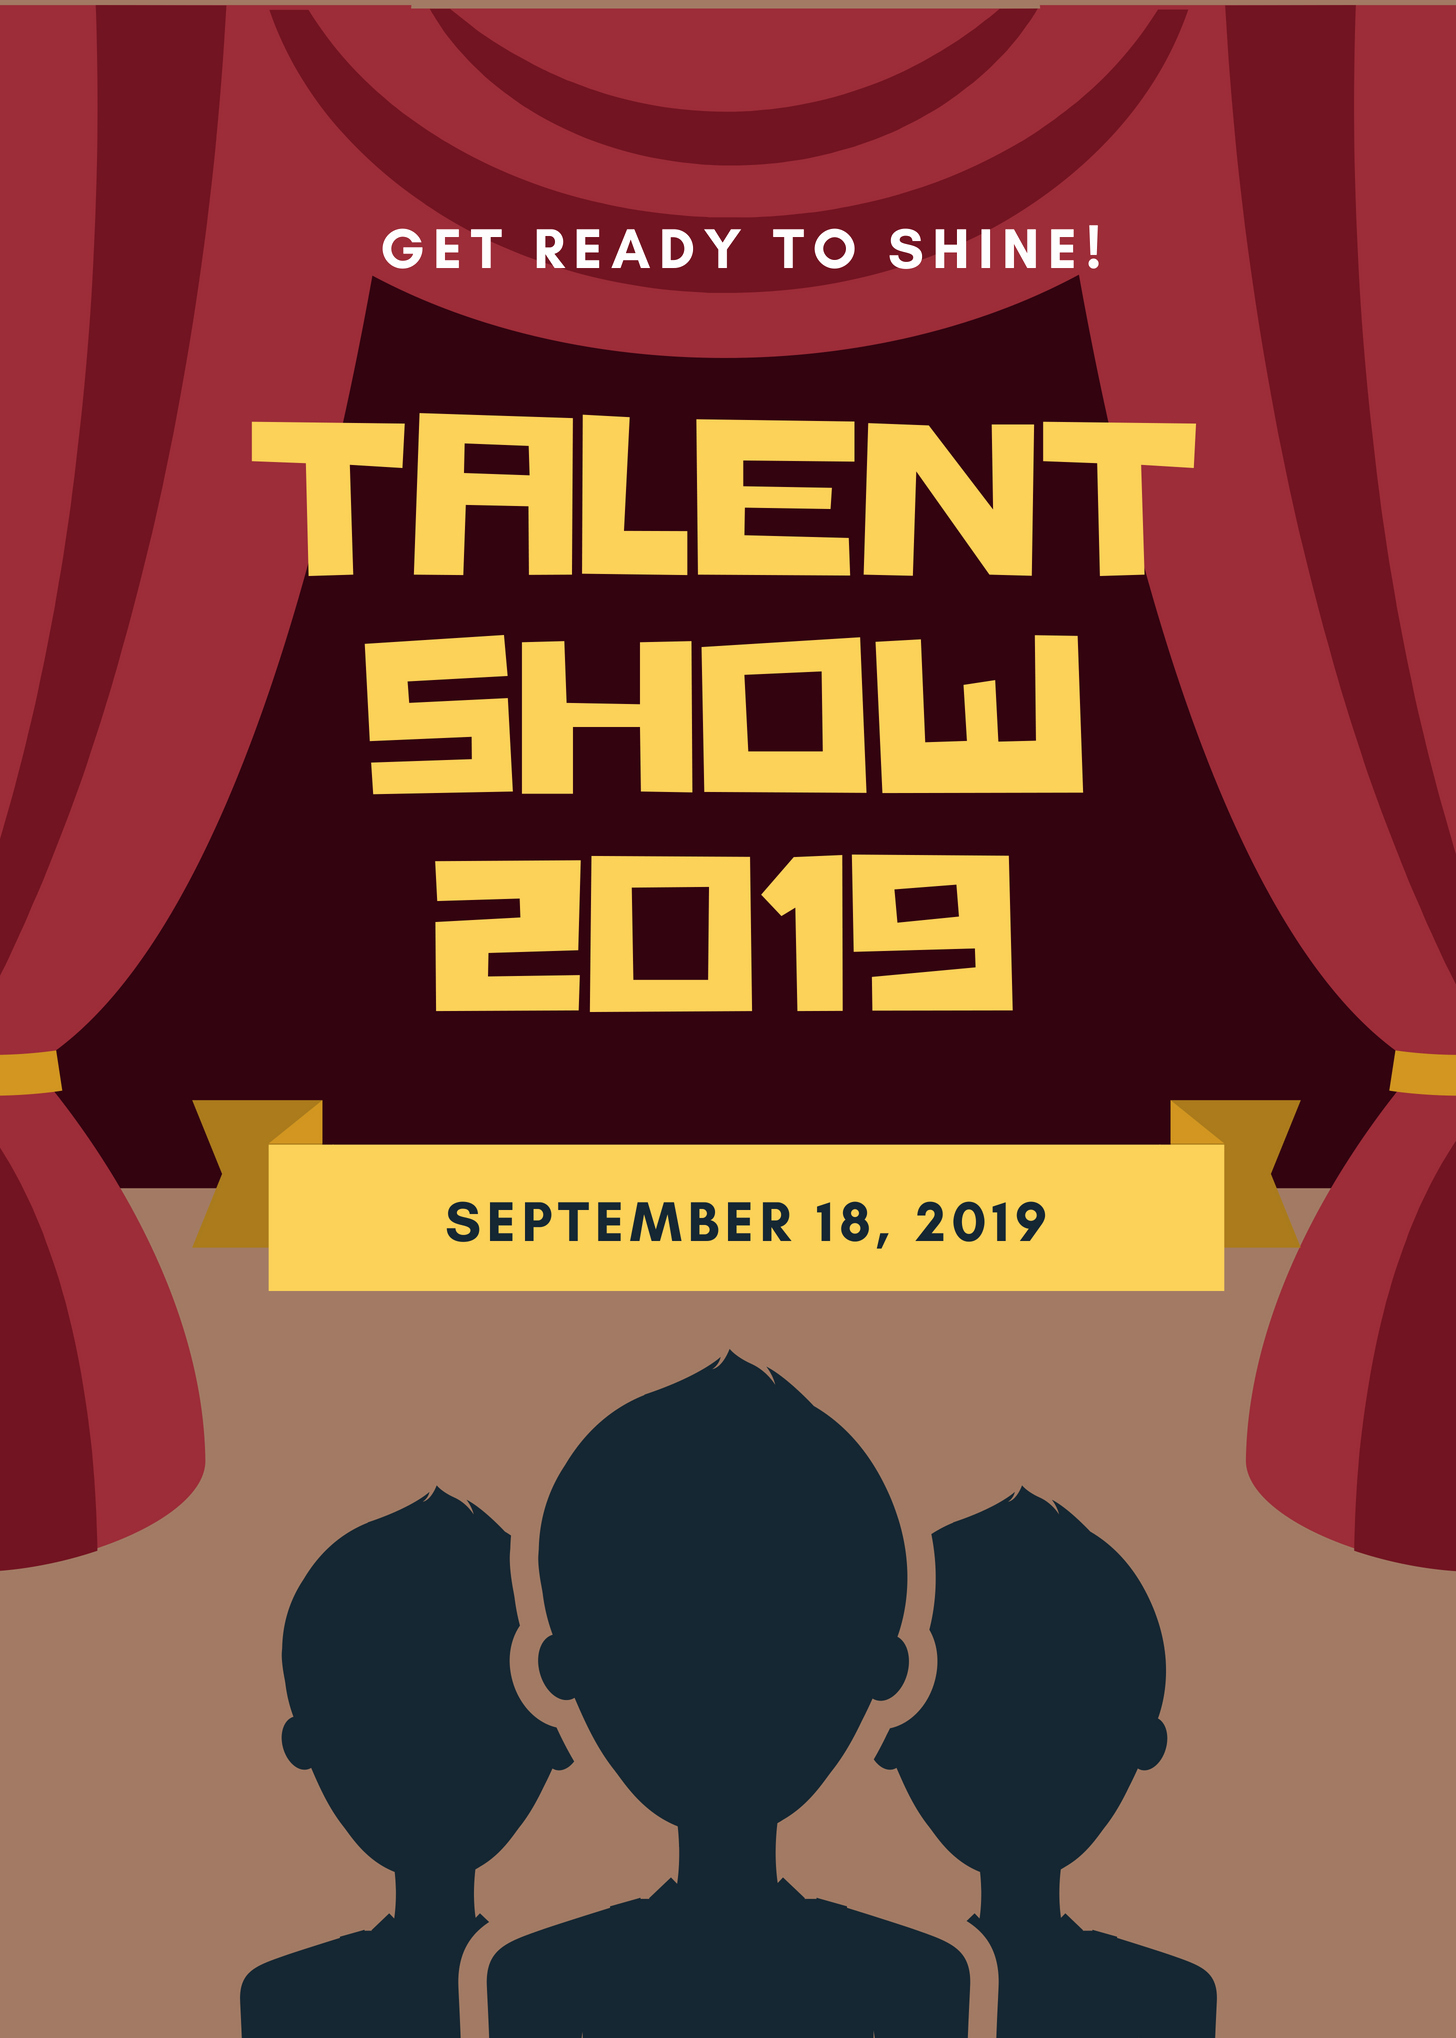 Free Talent Show Flyer Template Inspirational 23 Tips and Ideas to Promote Your School event